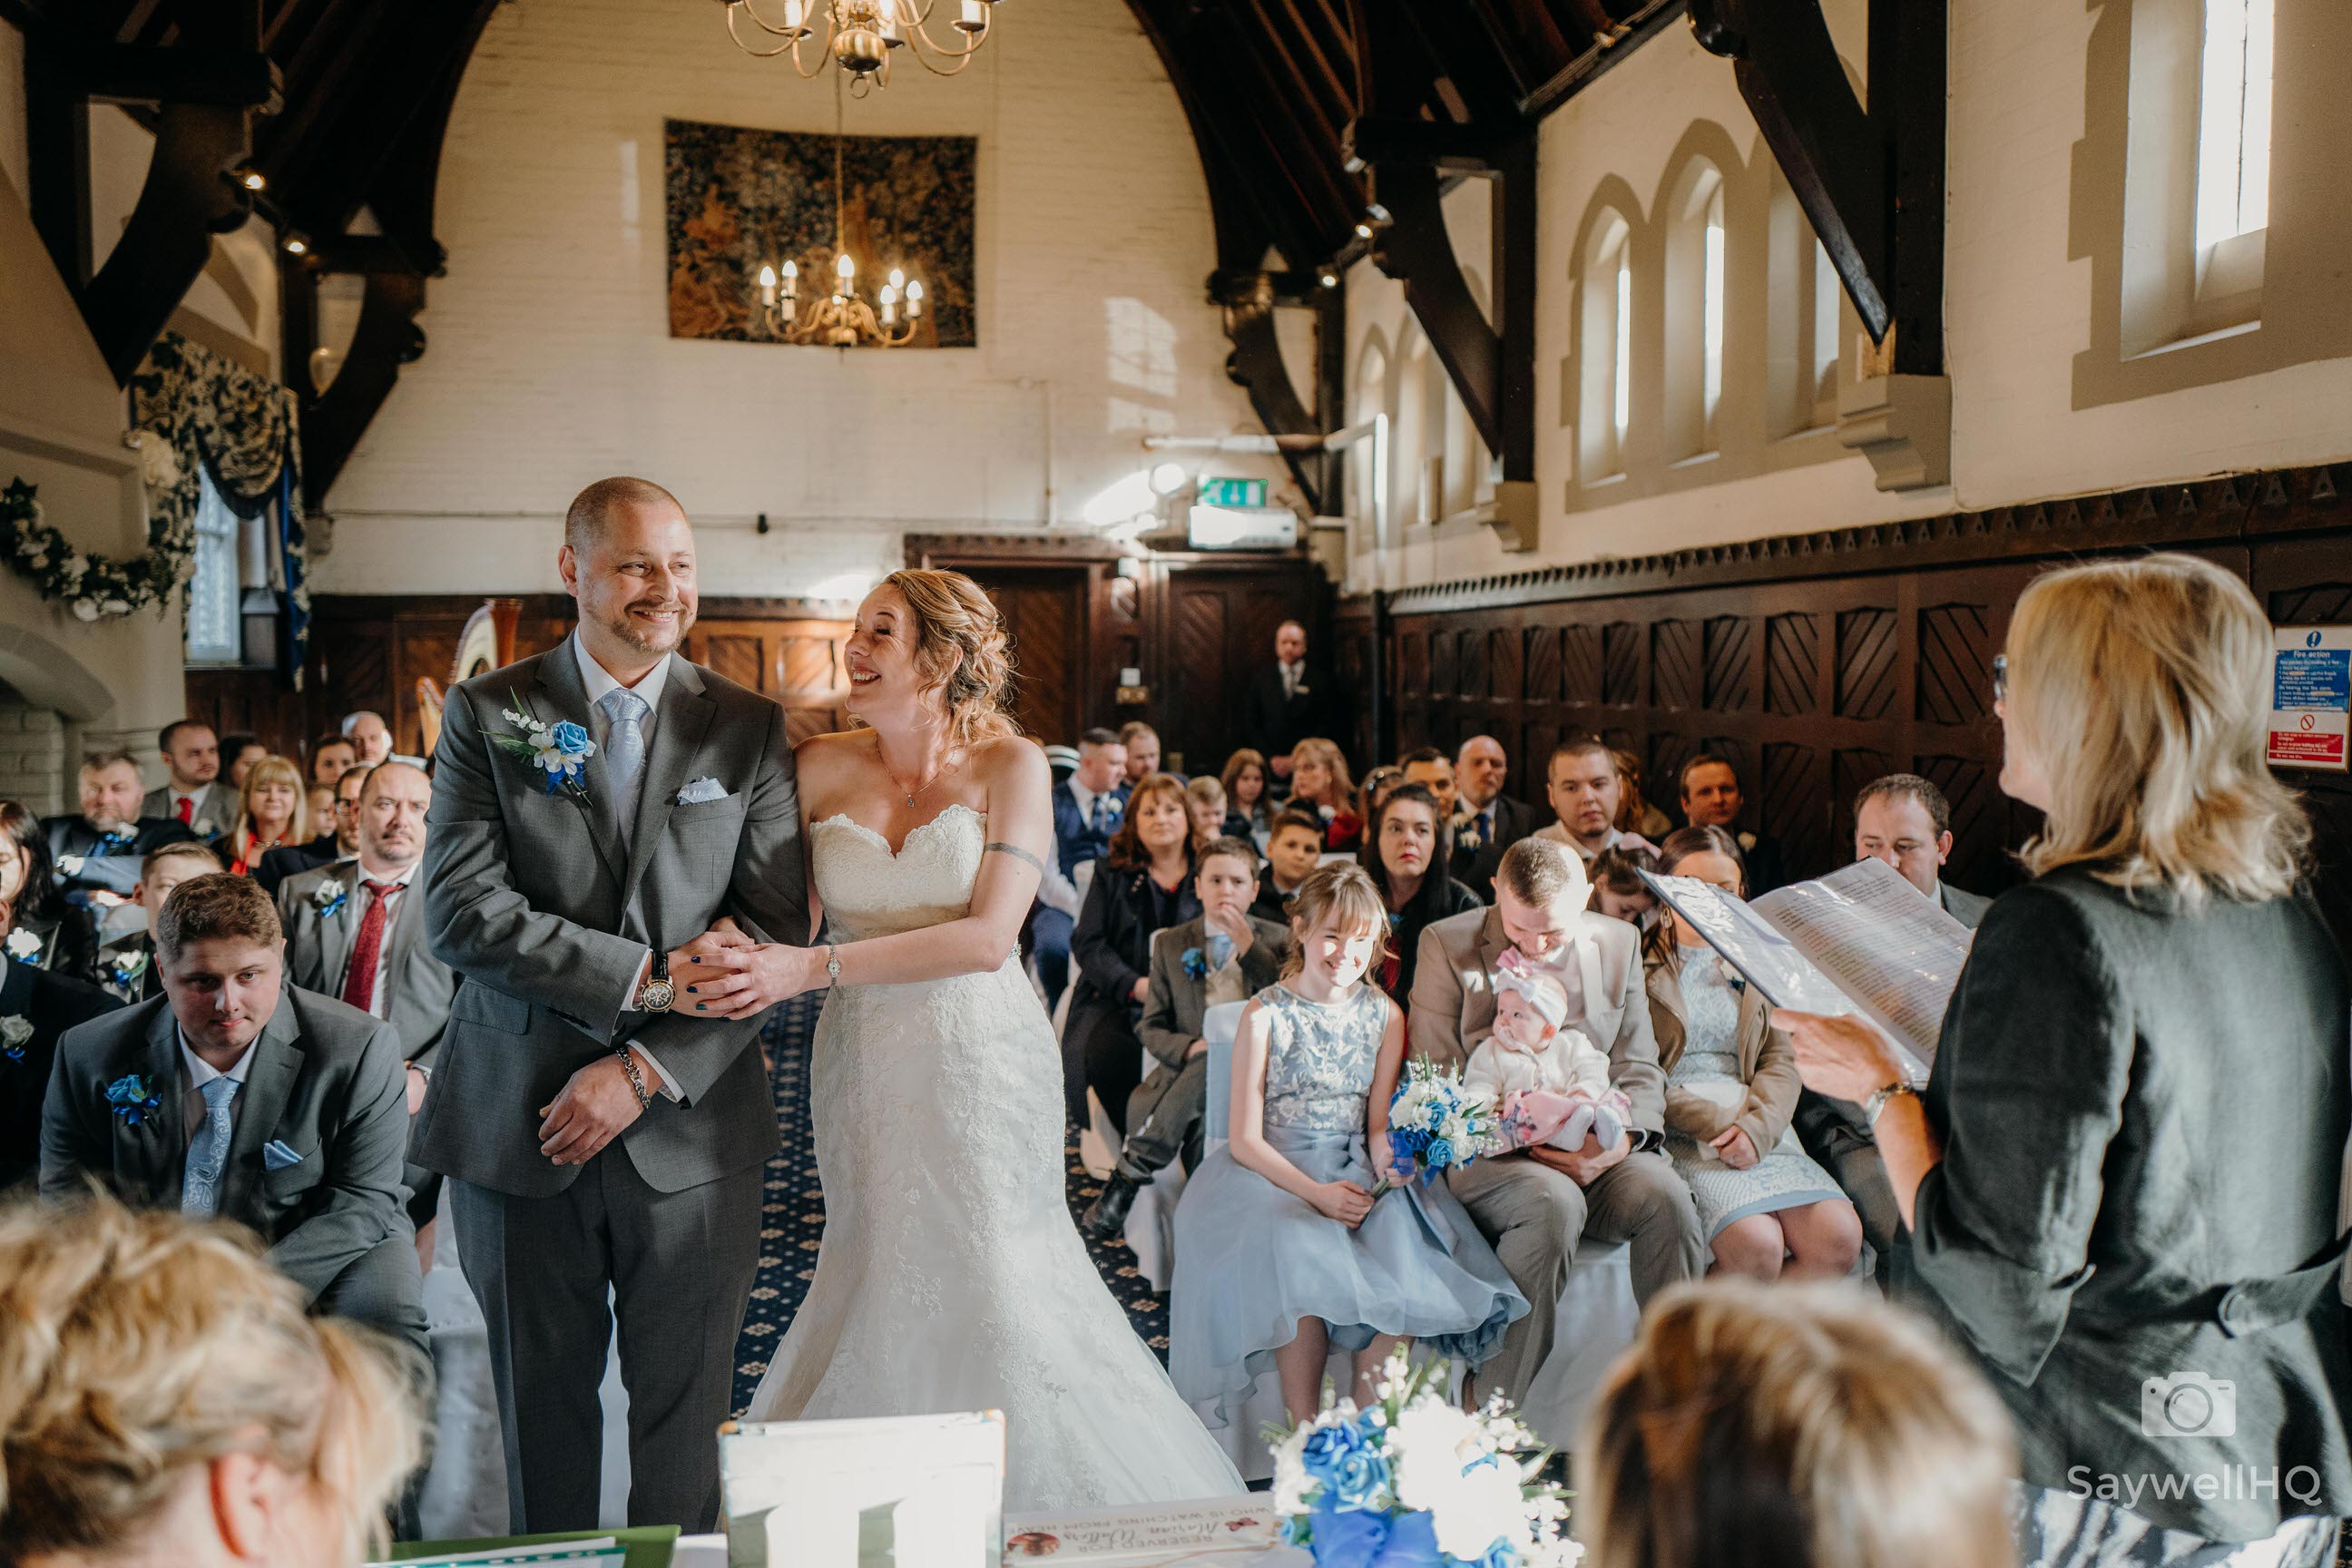 Bestwood Lodge Wedding Photography - bride and groom looking happy during their wedding ceremony at the Bestwood Lodge Hotel